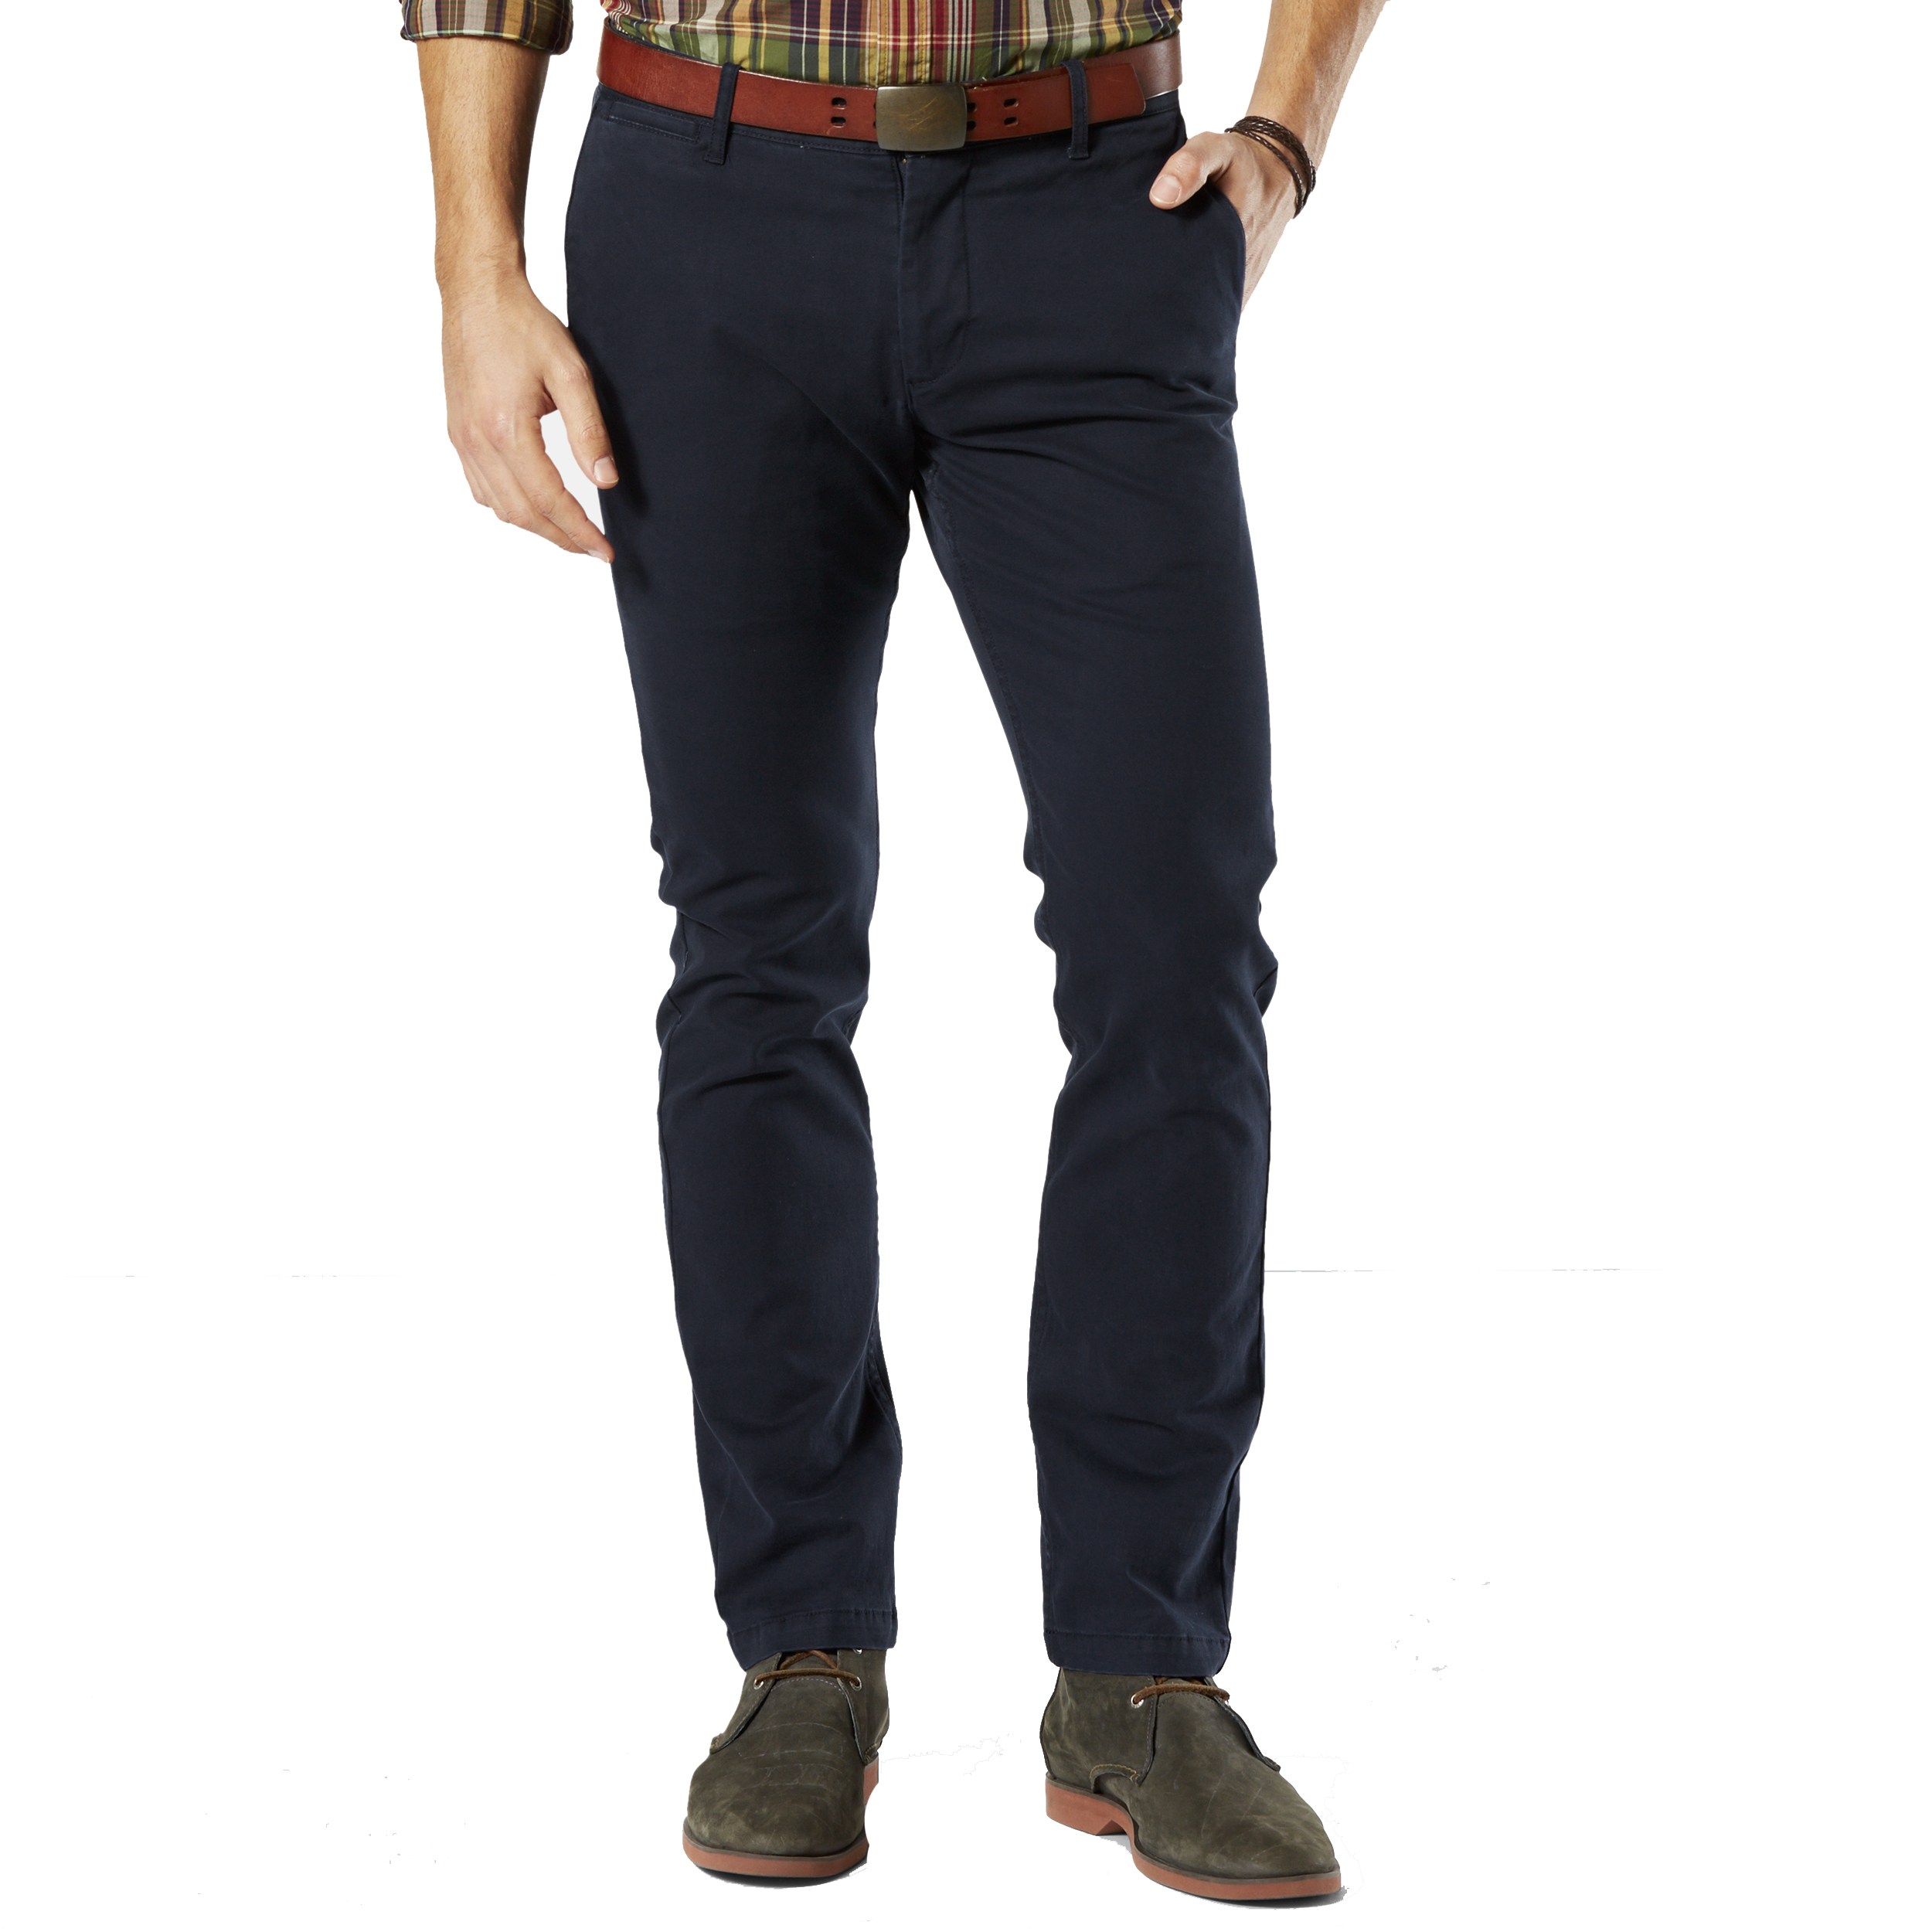 Pantalon pacific washed khaki slim tapered  en twill bleu marine